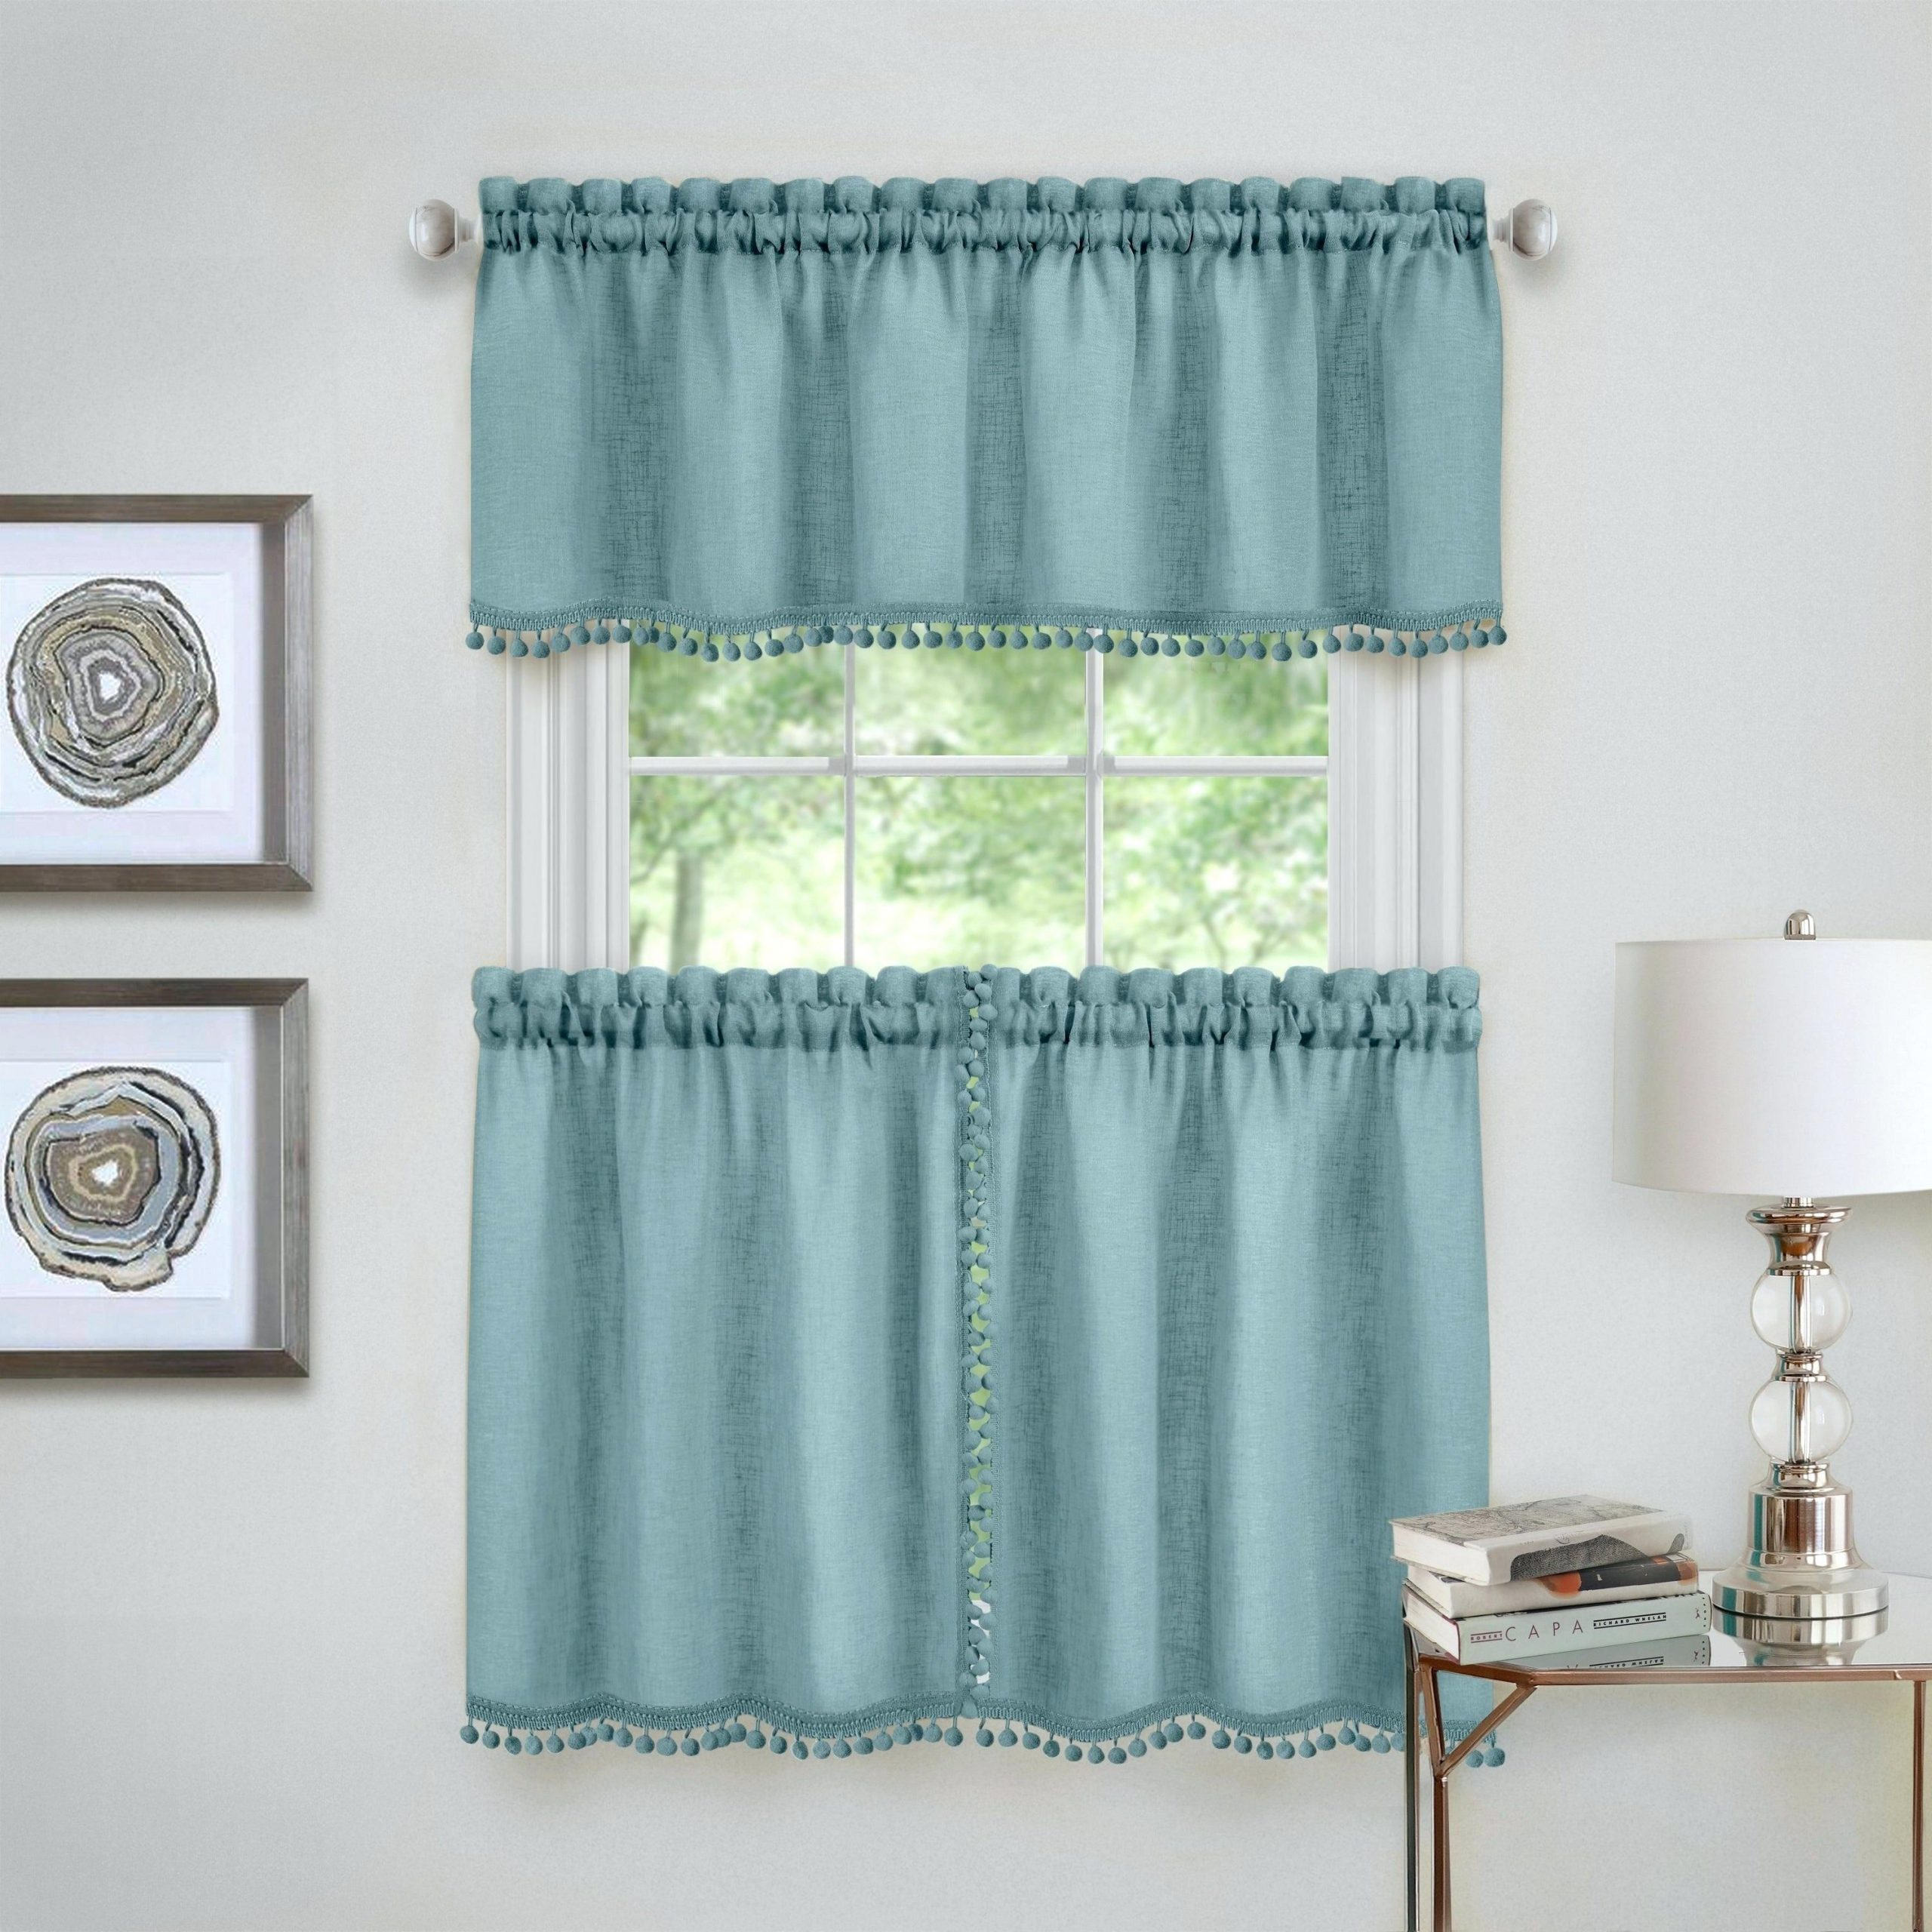 Curtain Sets With Valance – Onsaturn (View 10 of 20)